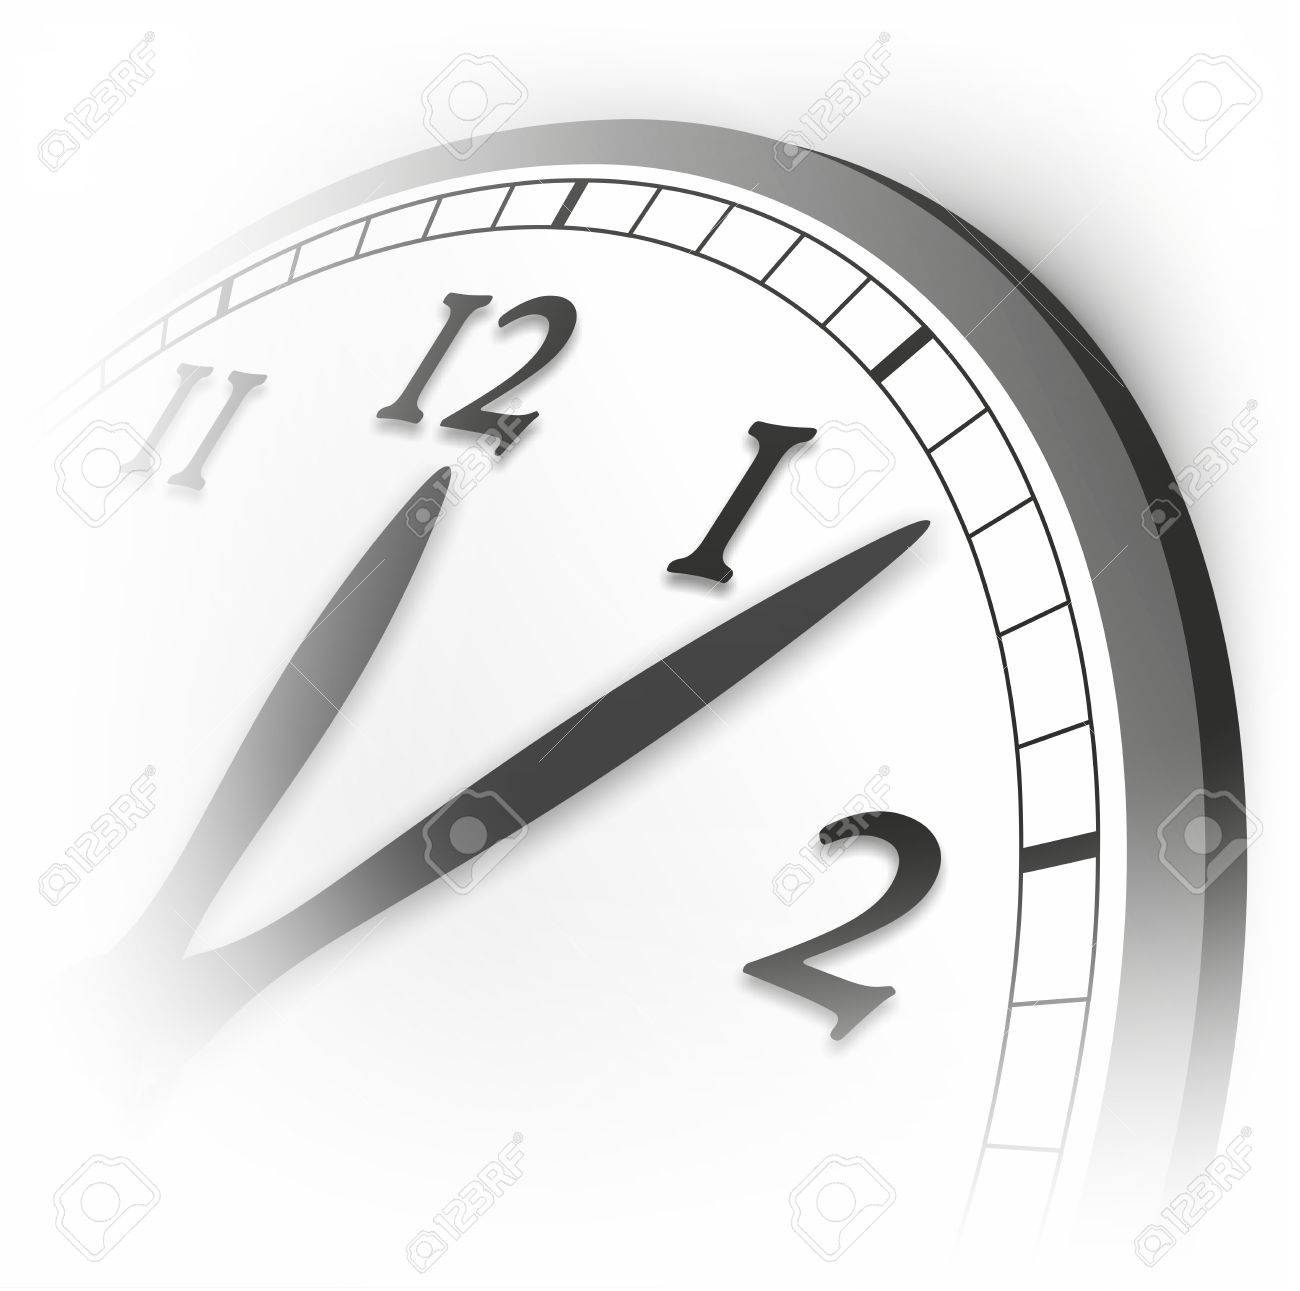 Detail Of Clock With Hands Indicating Five Past Twelve Stock Photo